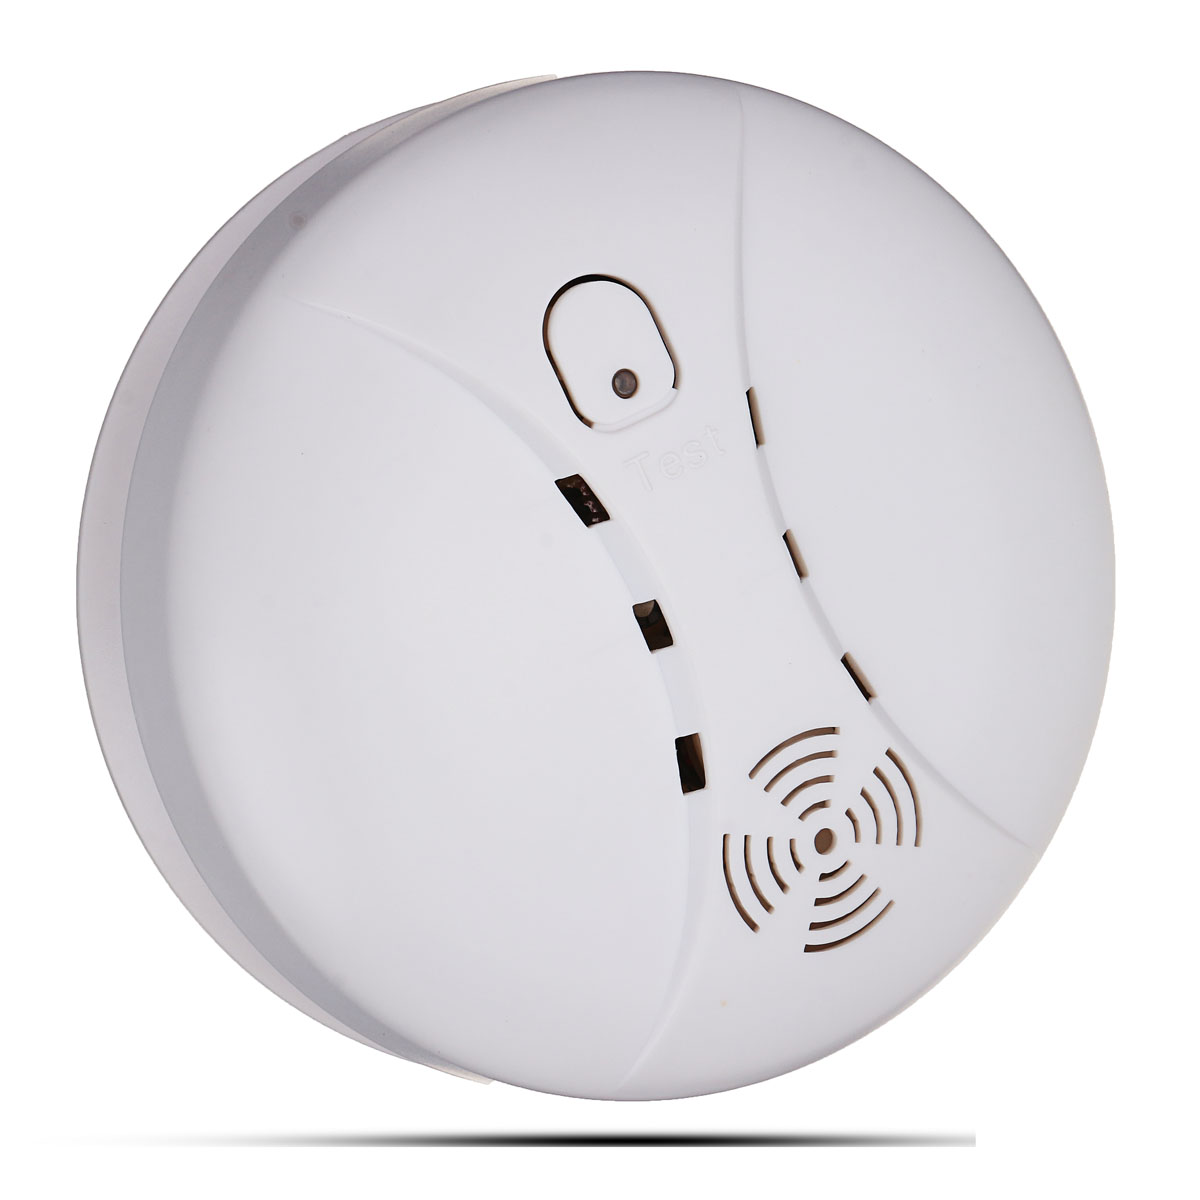 NEW 9V Wireless Smoke Alarm Sensor Detector With 85dB Home Security High Sensitive anti lost door alarm home security high sensitive alarm detector vibration alarm device electric aaa dry battery free shipping